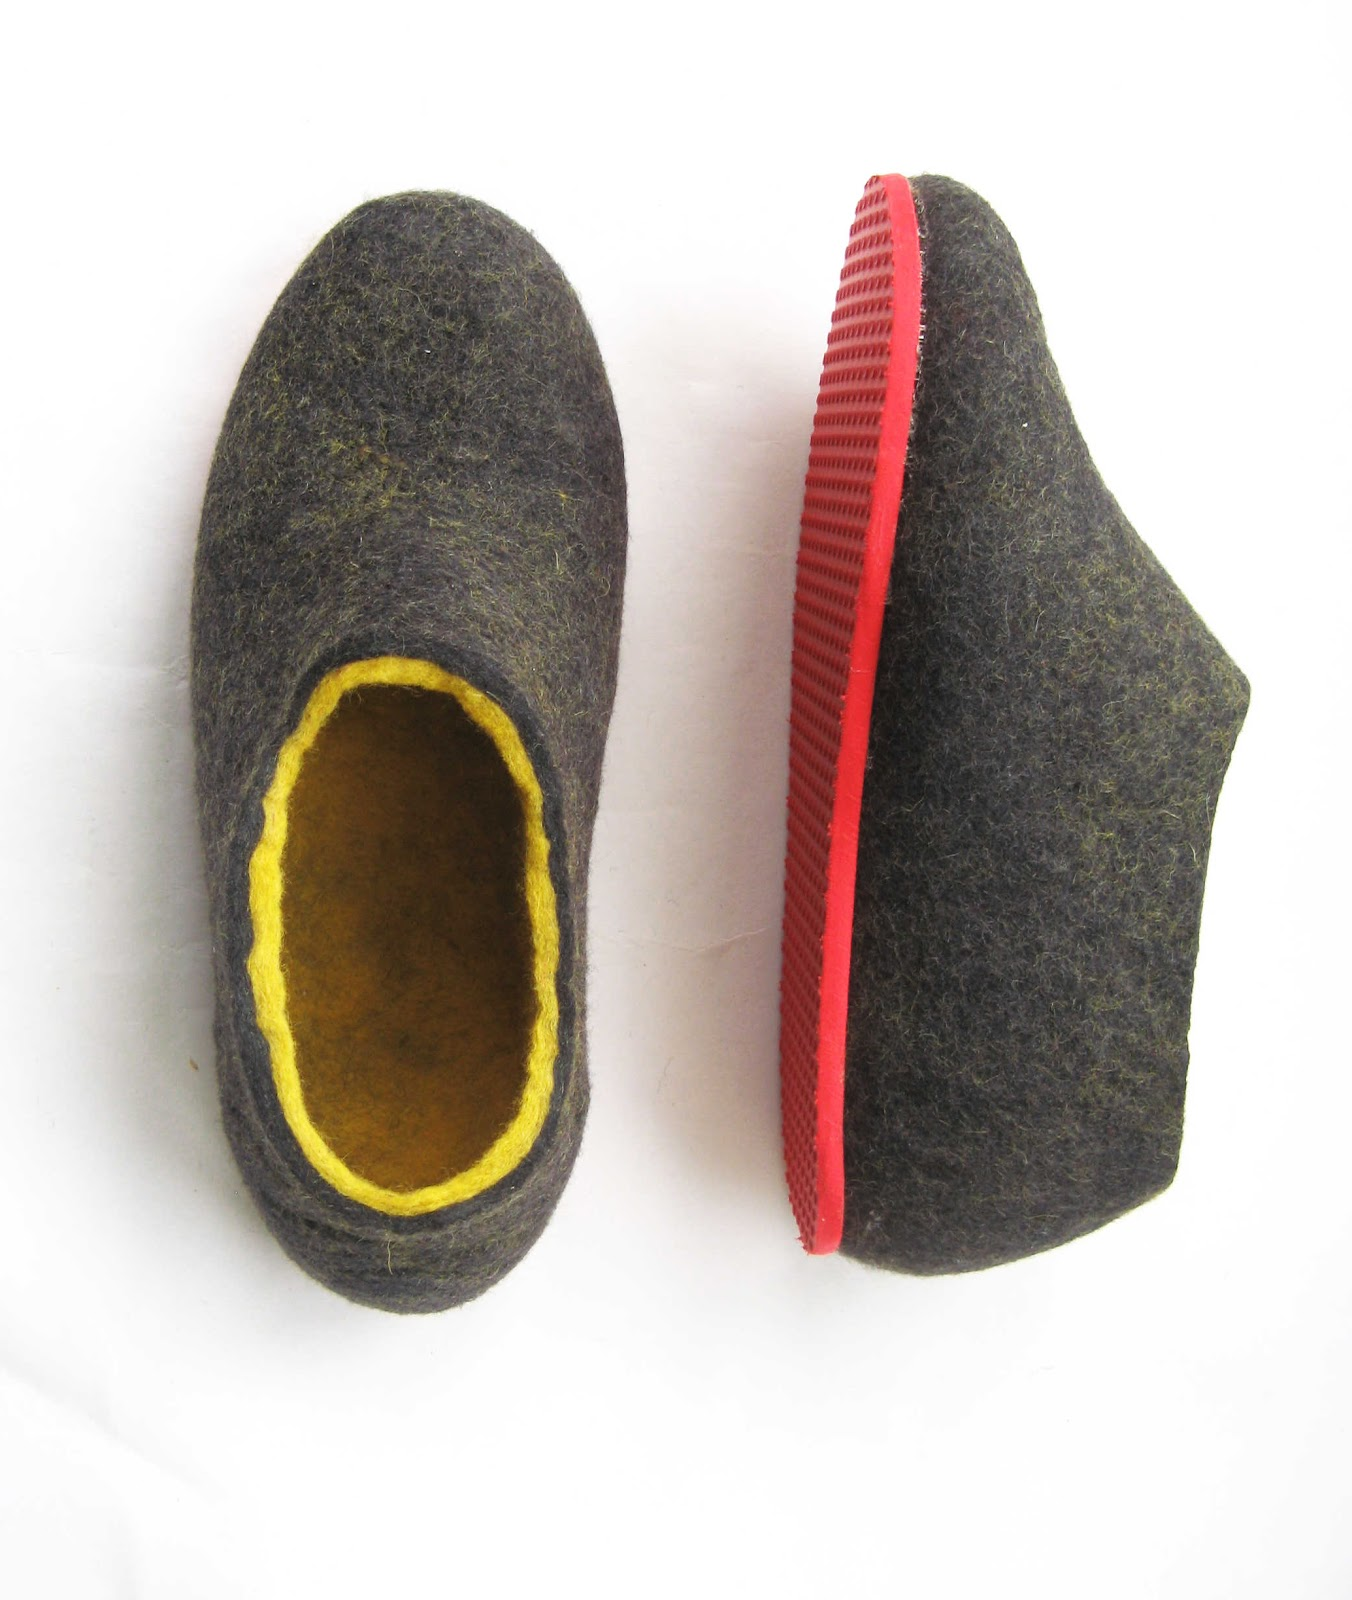 Ready for the spring felt wool shoes dark gray yellow with contrast